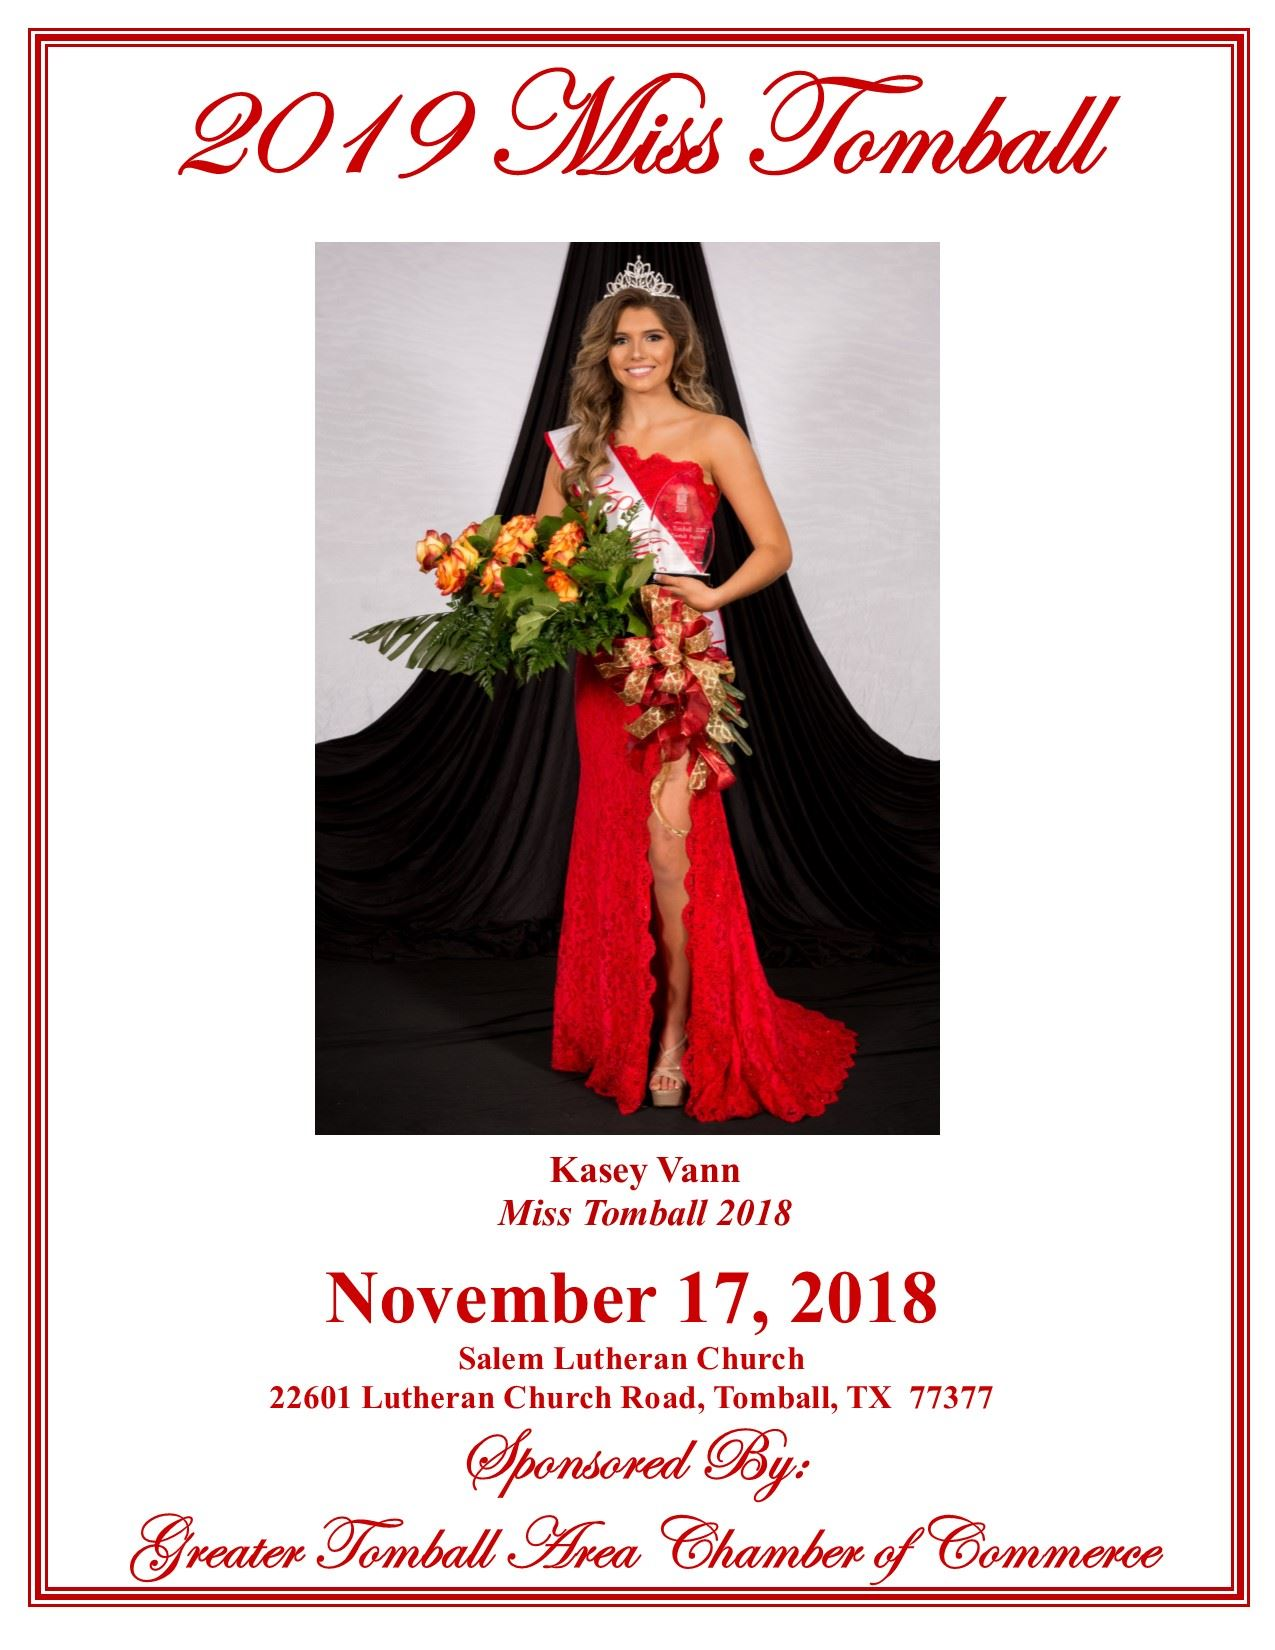 2019 Miss Tomball